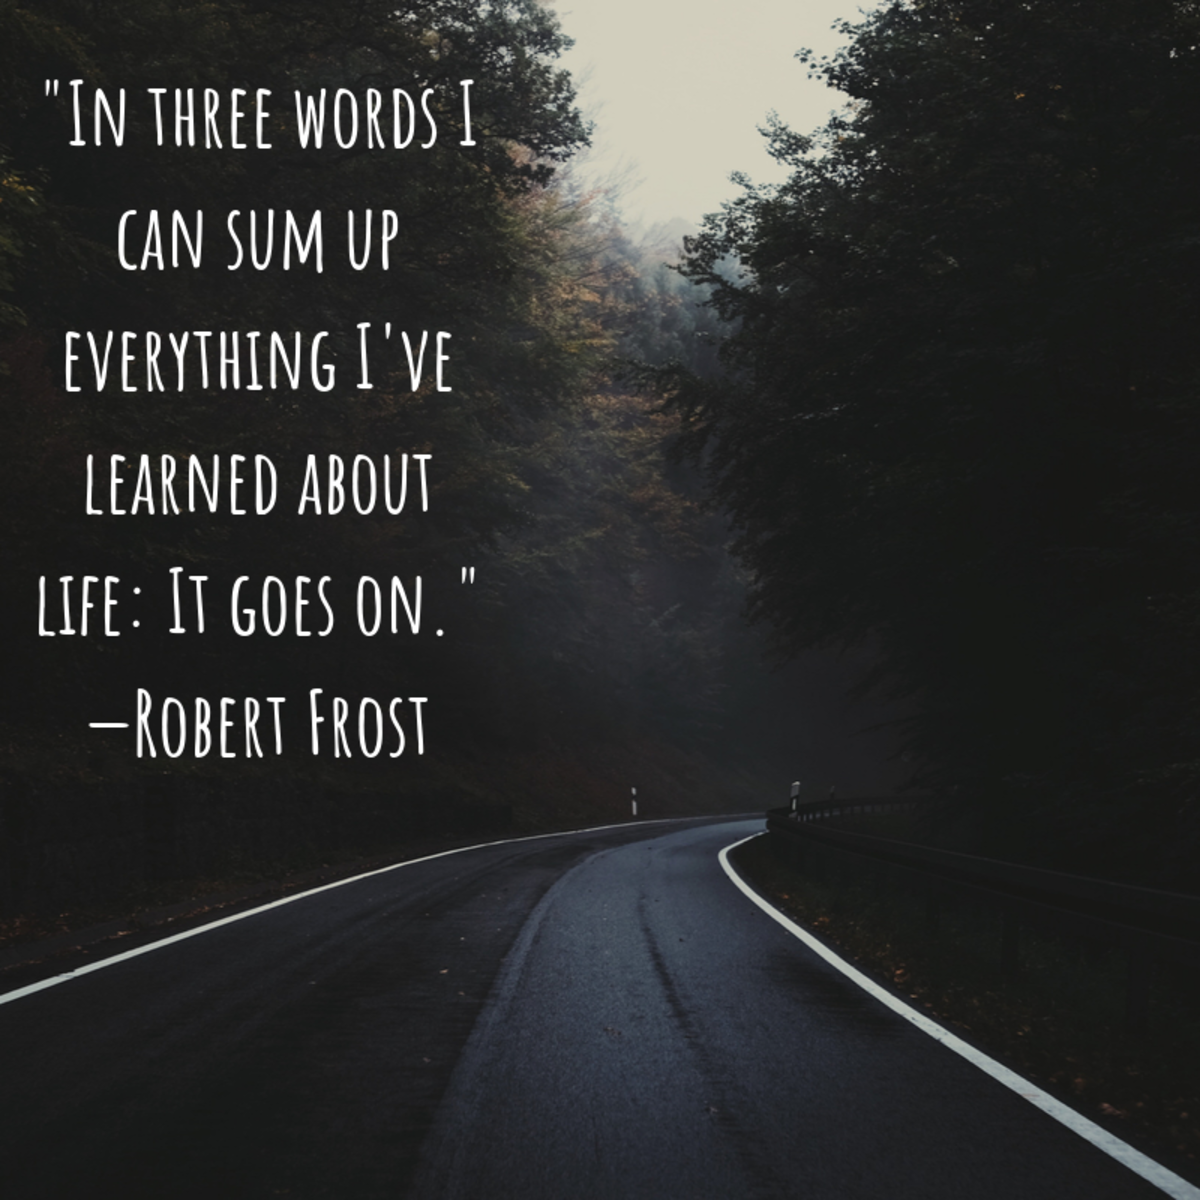 """In three words I can sum up everything I've learned about life: It goes on."" —Robert Frost"